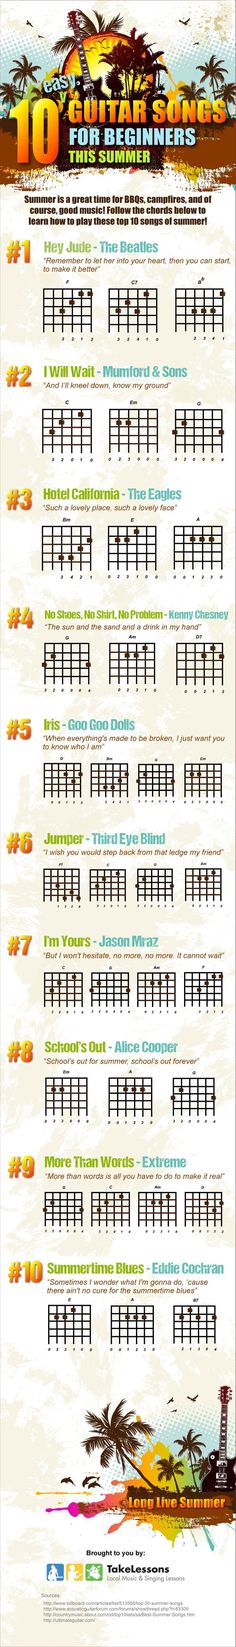 10 Easy Guitar Songs for Beginners This Summer. Maybe one day soon I'll learn to play again.